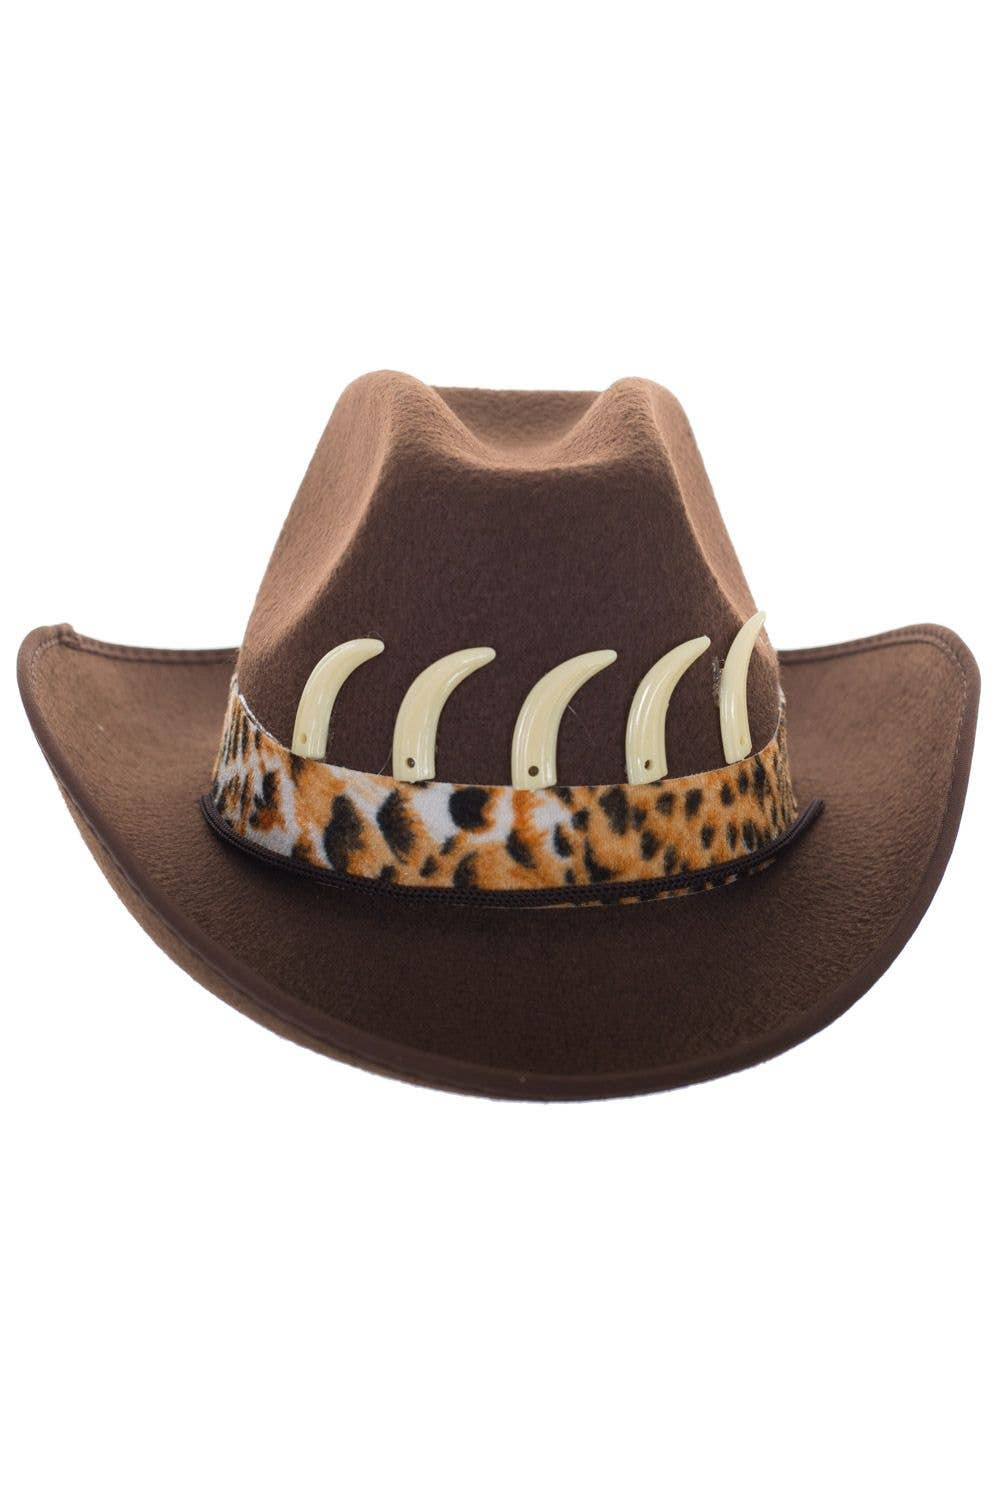 Adult S Crocodile Dundee Hat Brown Feltex Outback Hunter Hat